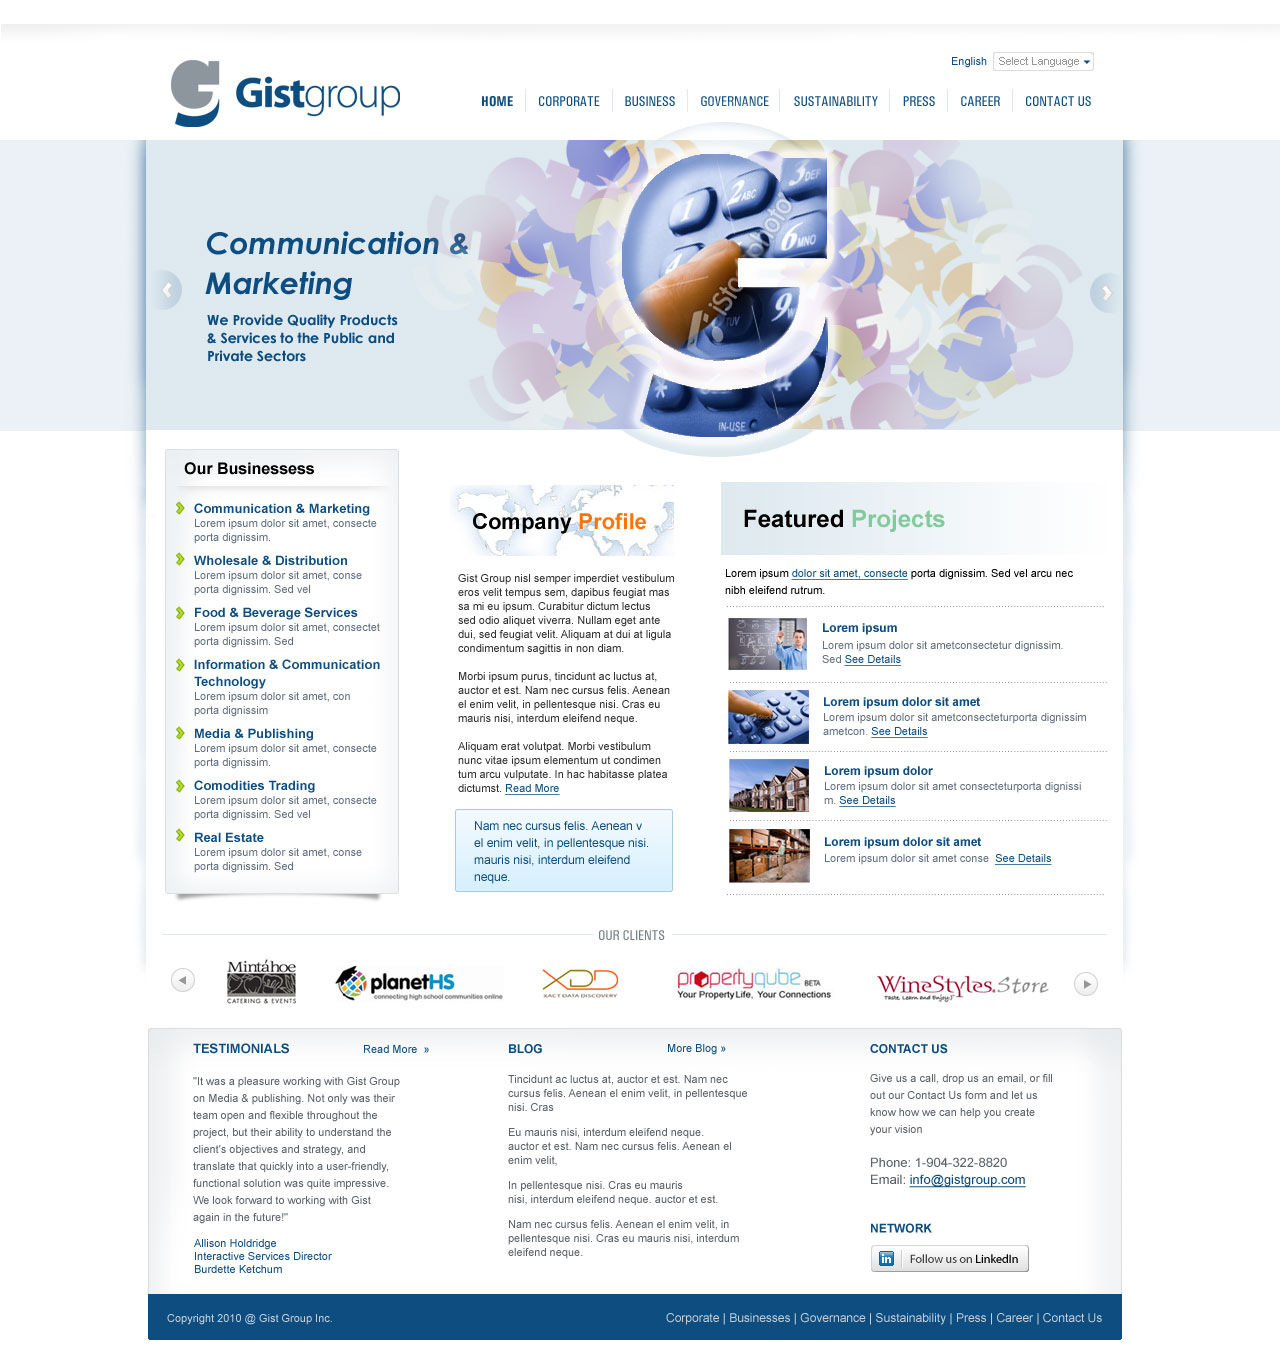 GistGroup-HomePage-another option